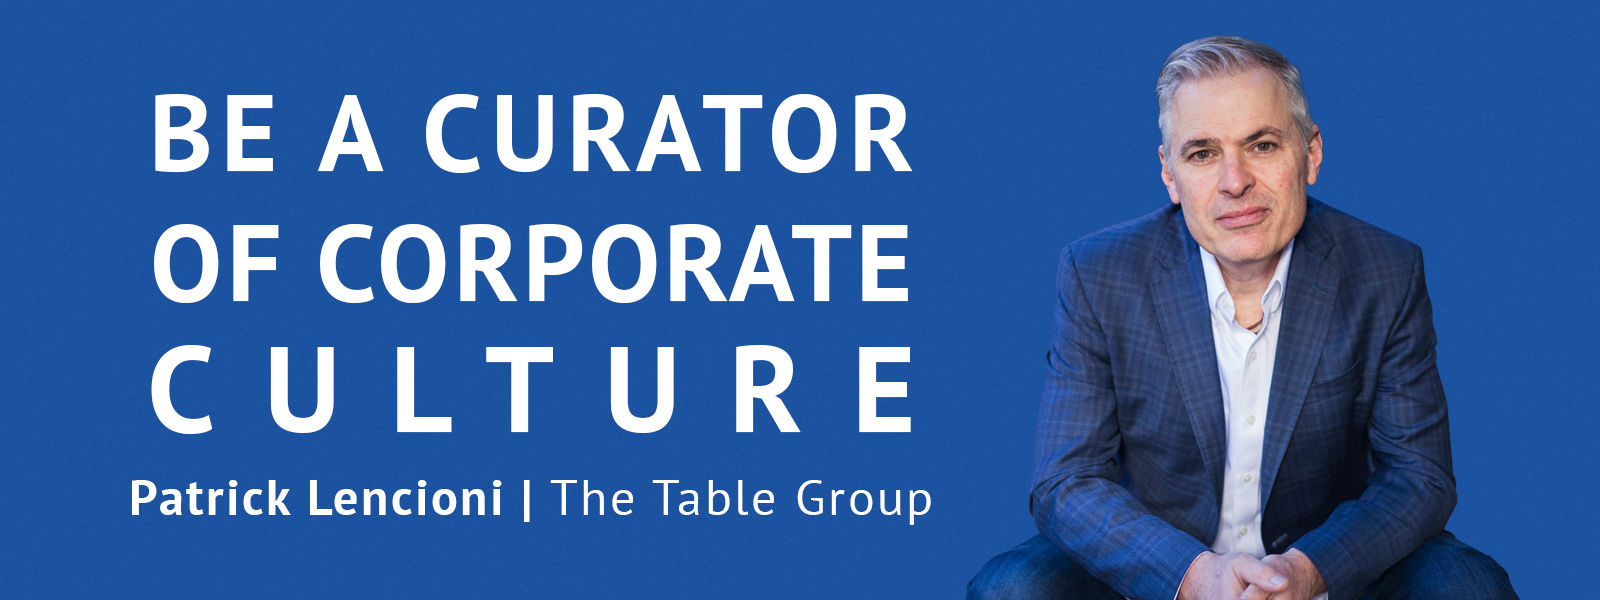 Be a Curator of Corporate Culture